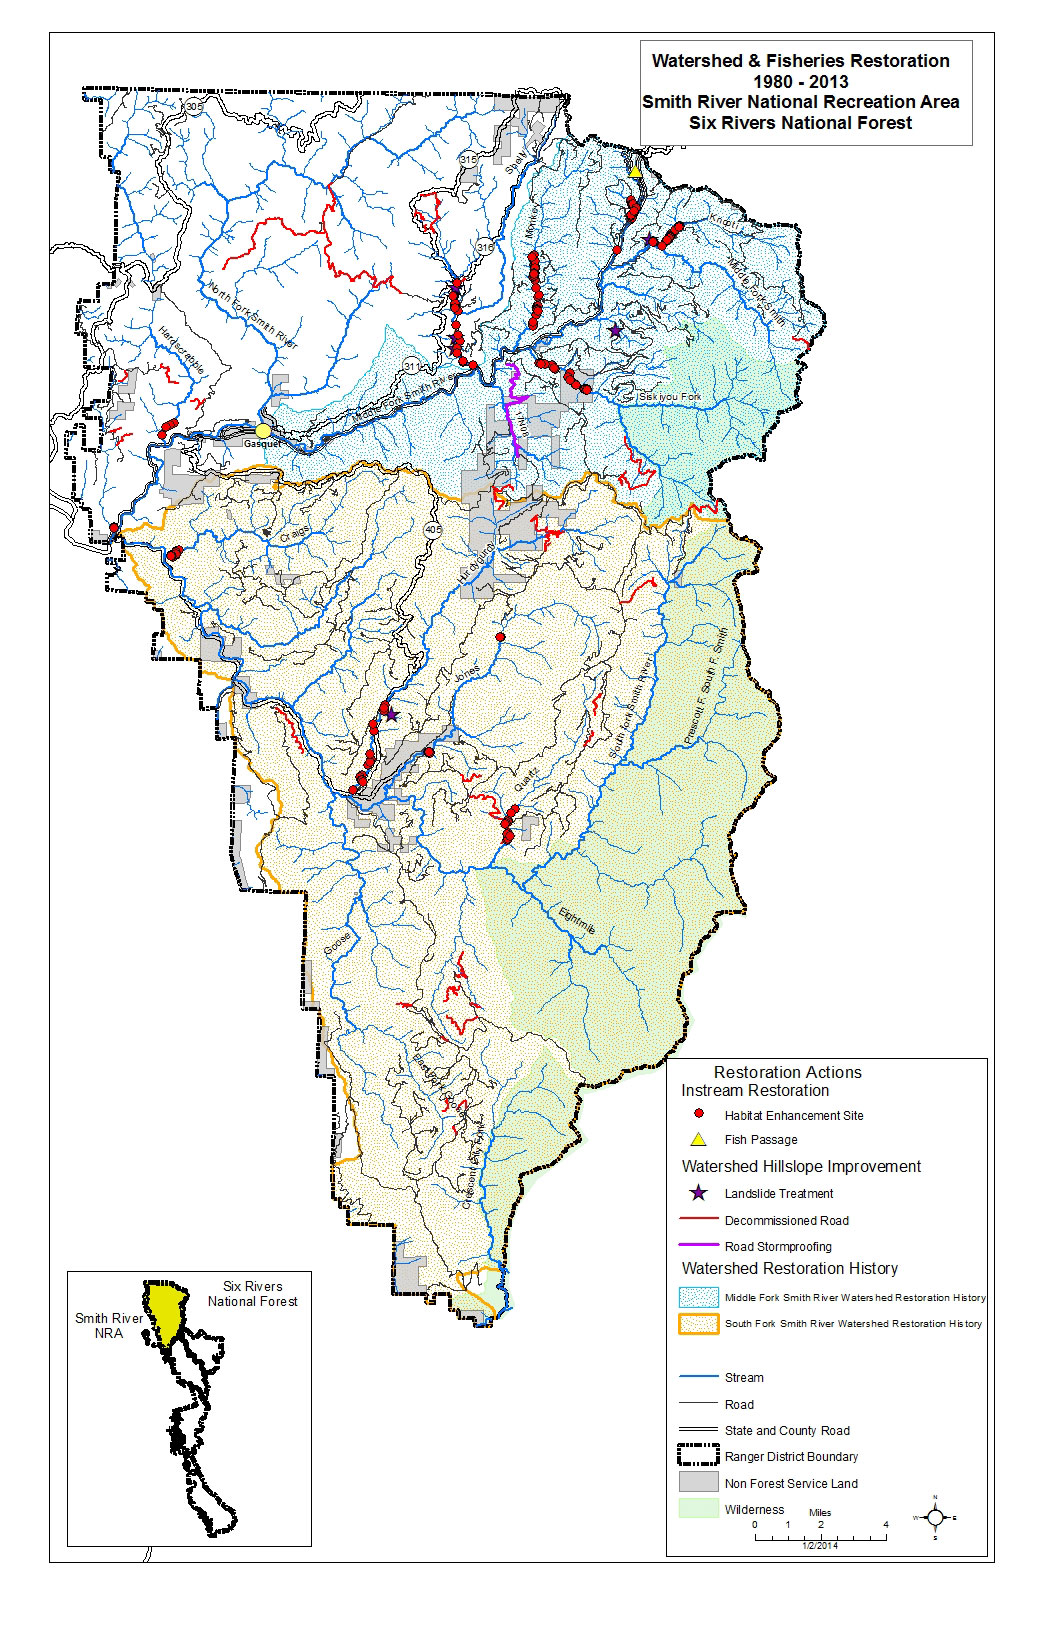 Six Rivers National Forest Home Ka24de Tps Wiring Diagram Watershed Fisheries Restoration 1980 2013